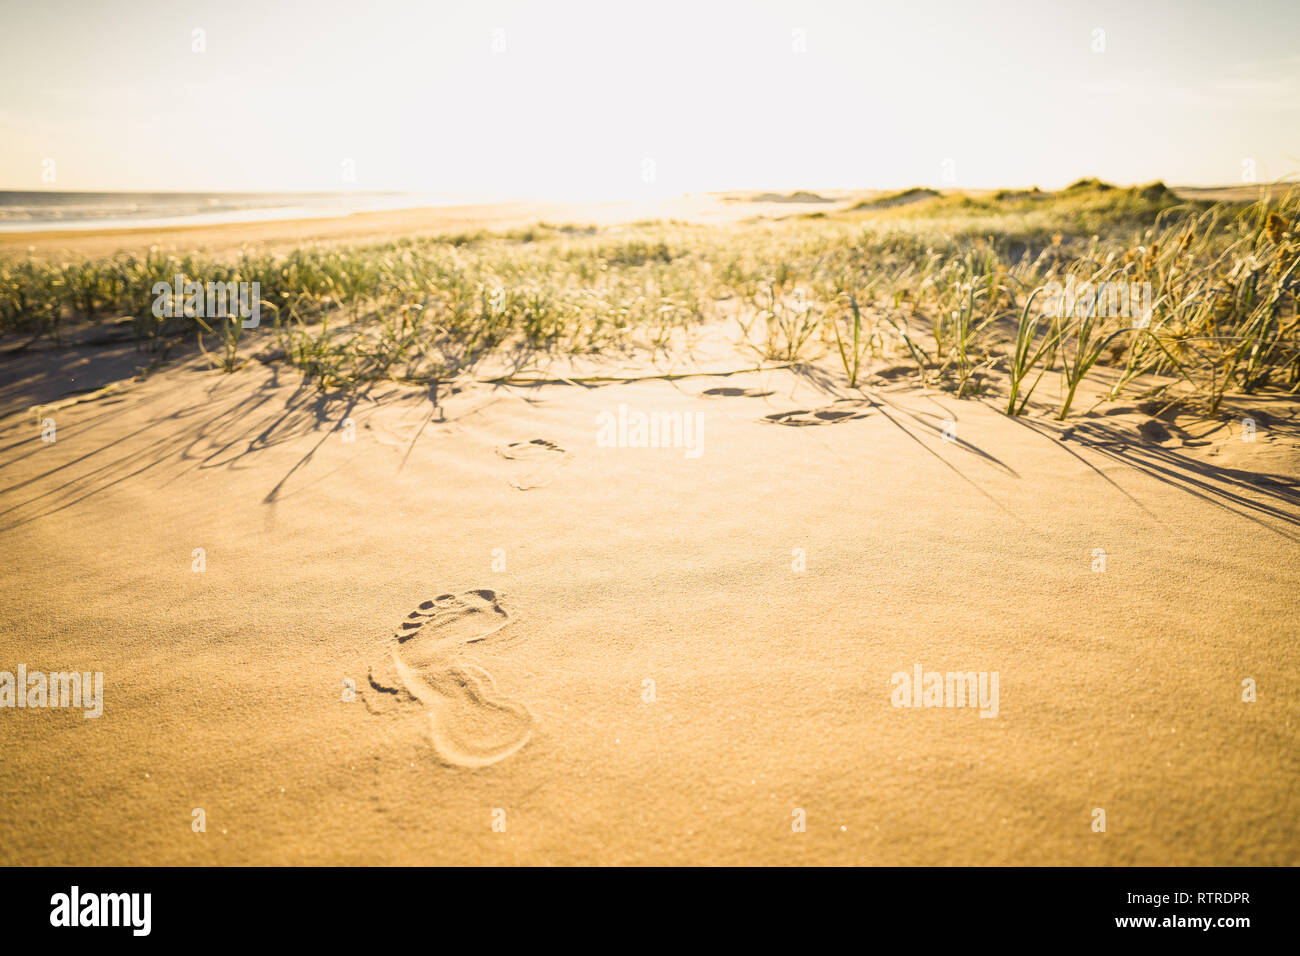 Leave only your footprint - Stock Image